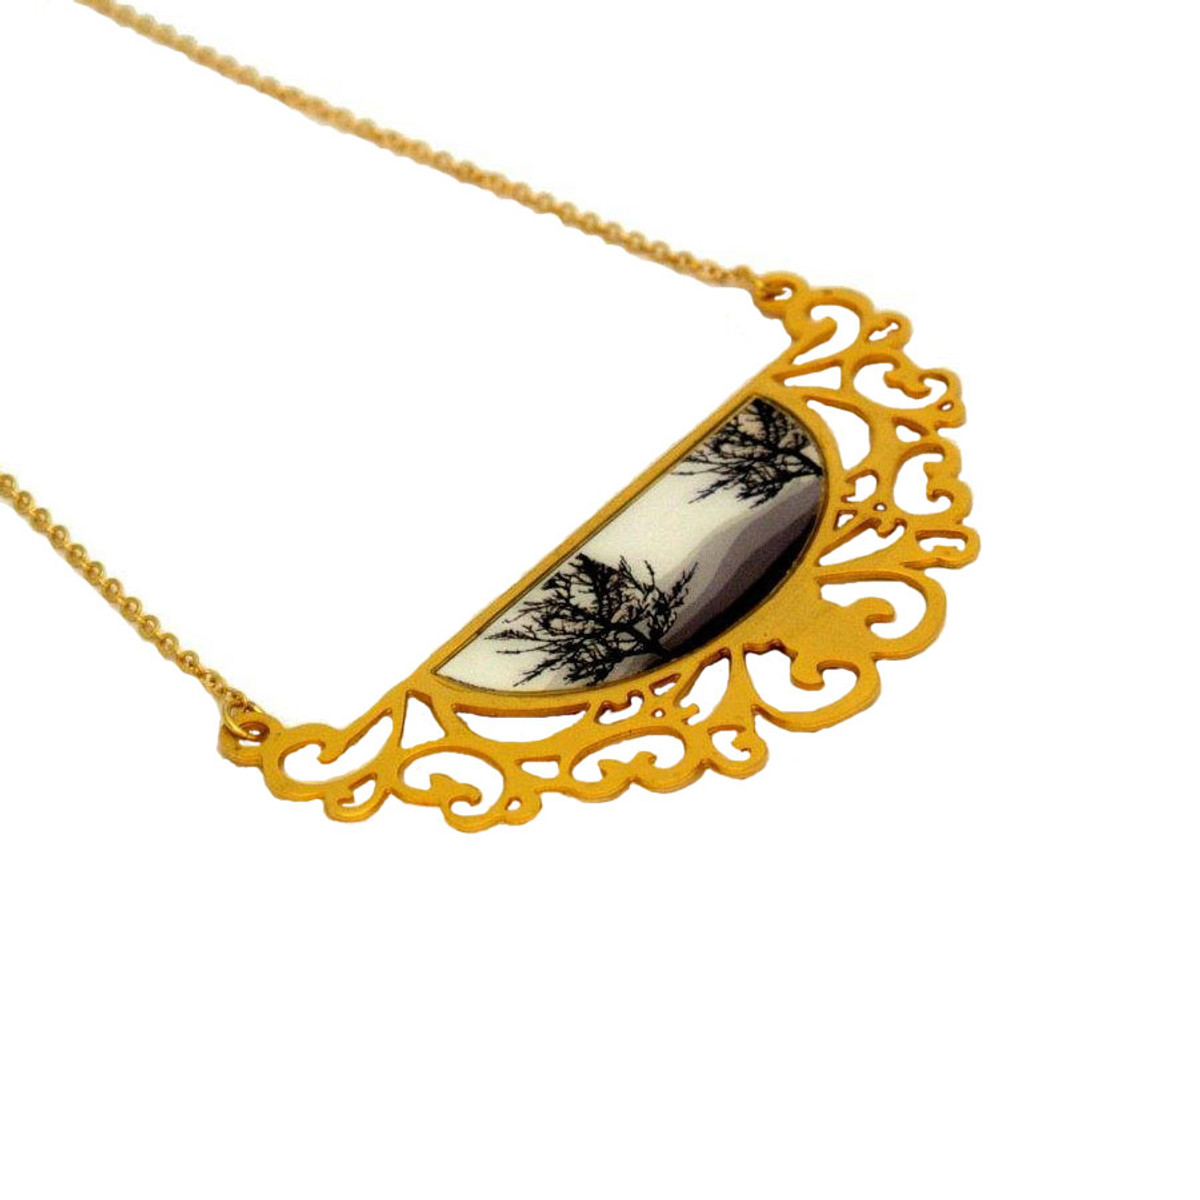 Iris Designs Black Forest Painting Necklace